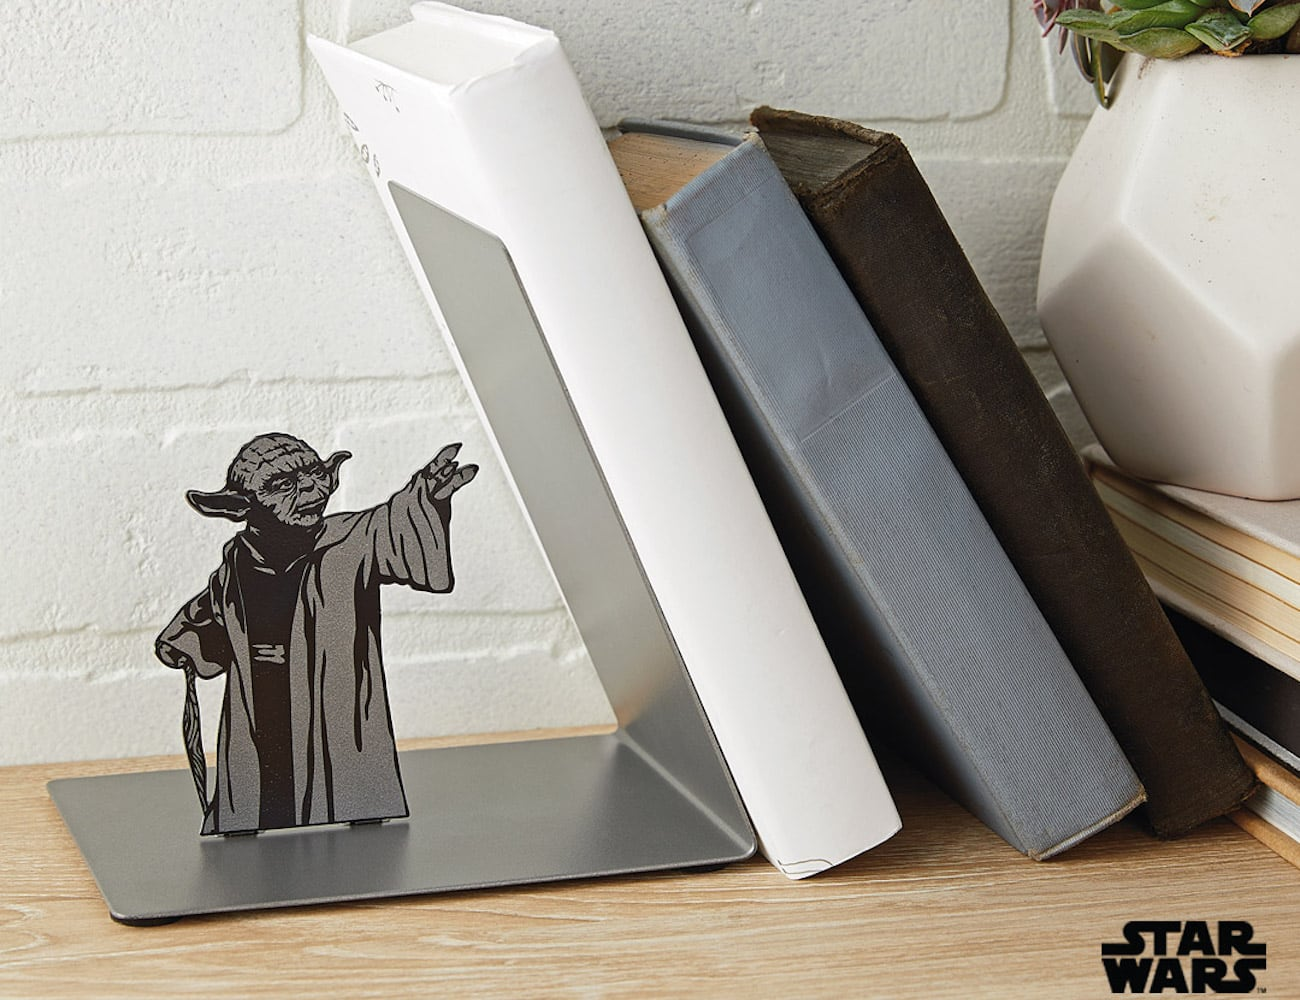 Hallmark Star Wars Yoda Metal Bookend uses the power of the Force